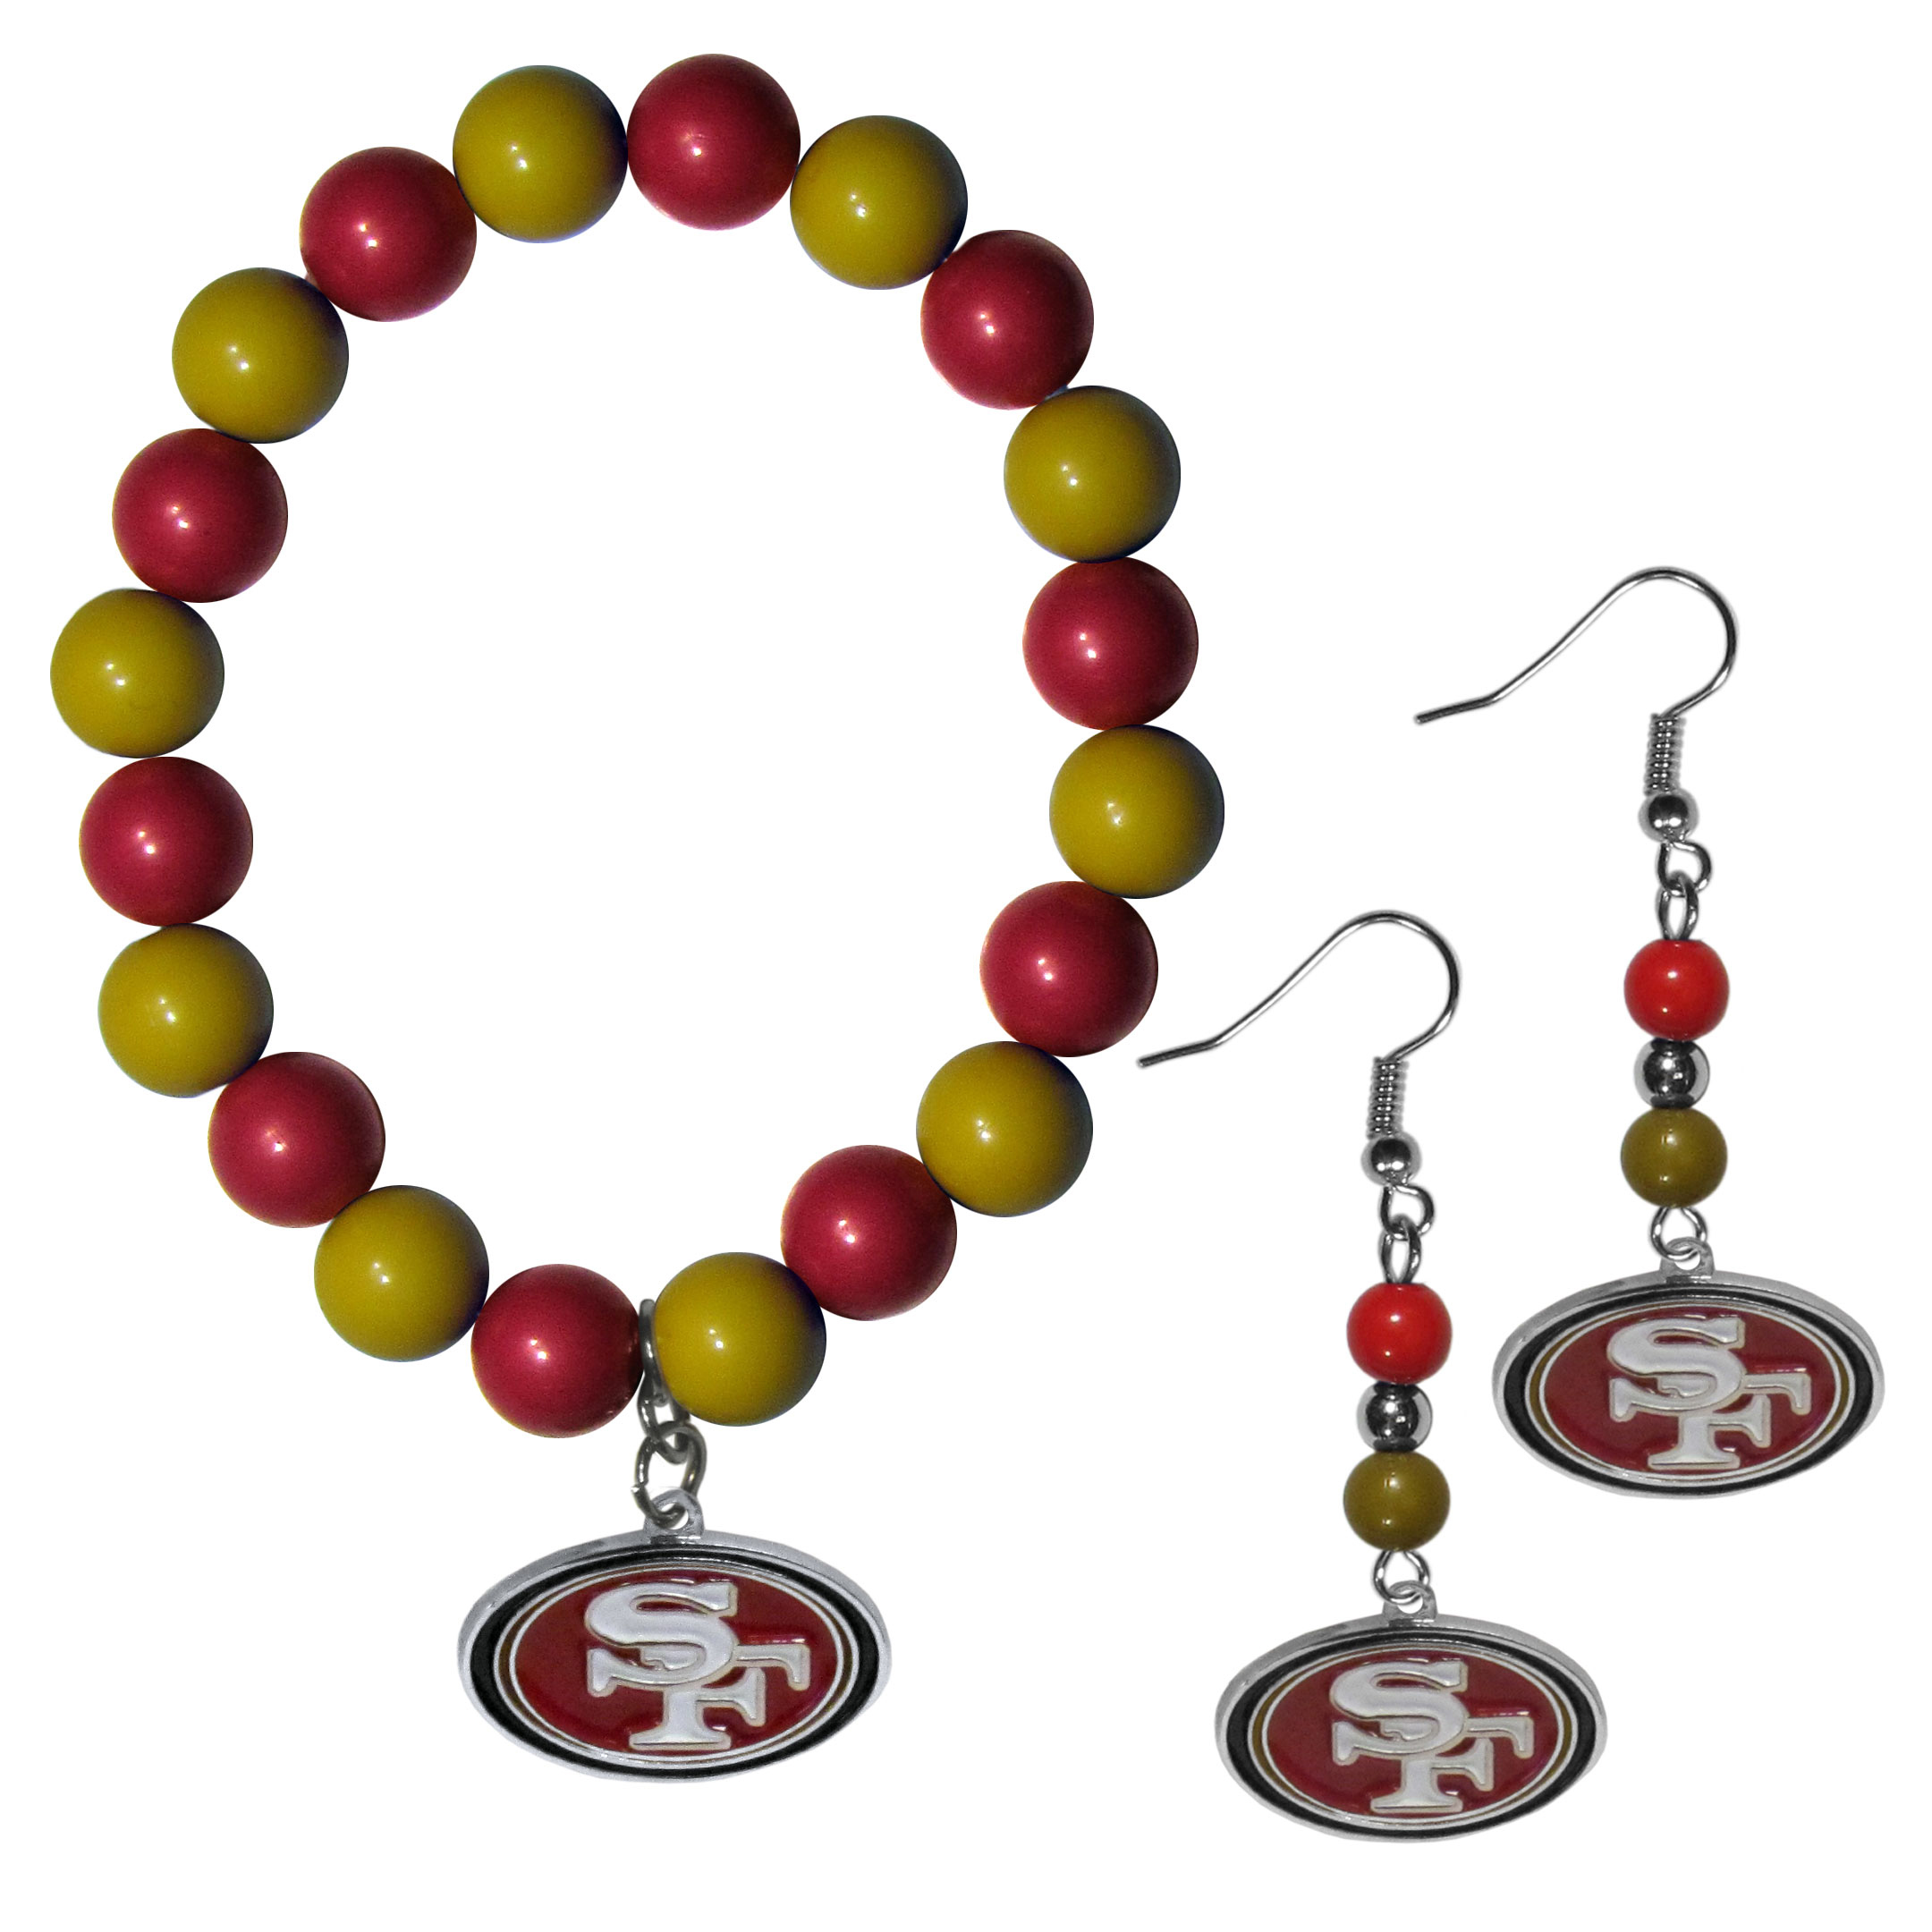 San Francisco 49ers Fan Bead Earrings and Bracelet Set - This fun and colorful San Francisco 49ers fan bead jewelry set is fun and casual with eye-catching beads in bright team colors. The fashionable dangle earrings feature a team colored beads that drop down to a carved and enameled charm. The stretch bracelet has larger matching beads that make a striking statement and have a matching team charm. These sassy yet sporty jewelry pieces make a perfect gift for any female fan. Spice up your game-day outfit with these fun colorful earrings and bracelet that are also cute enough for any day.